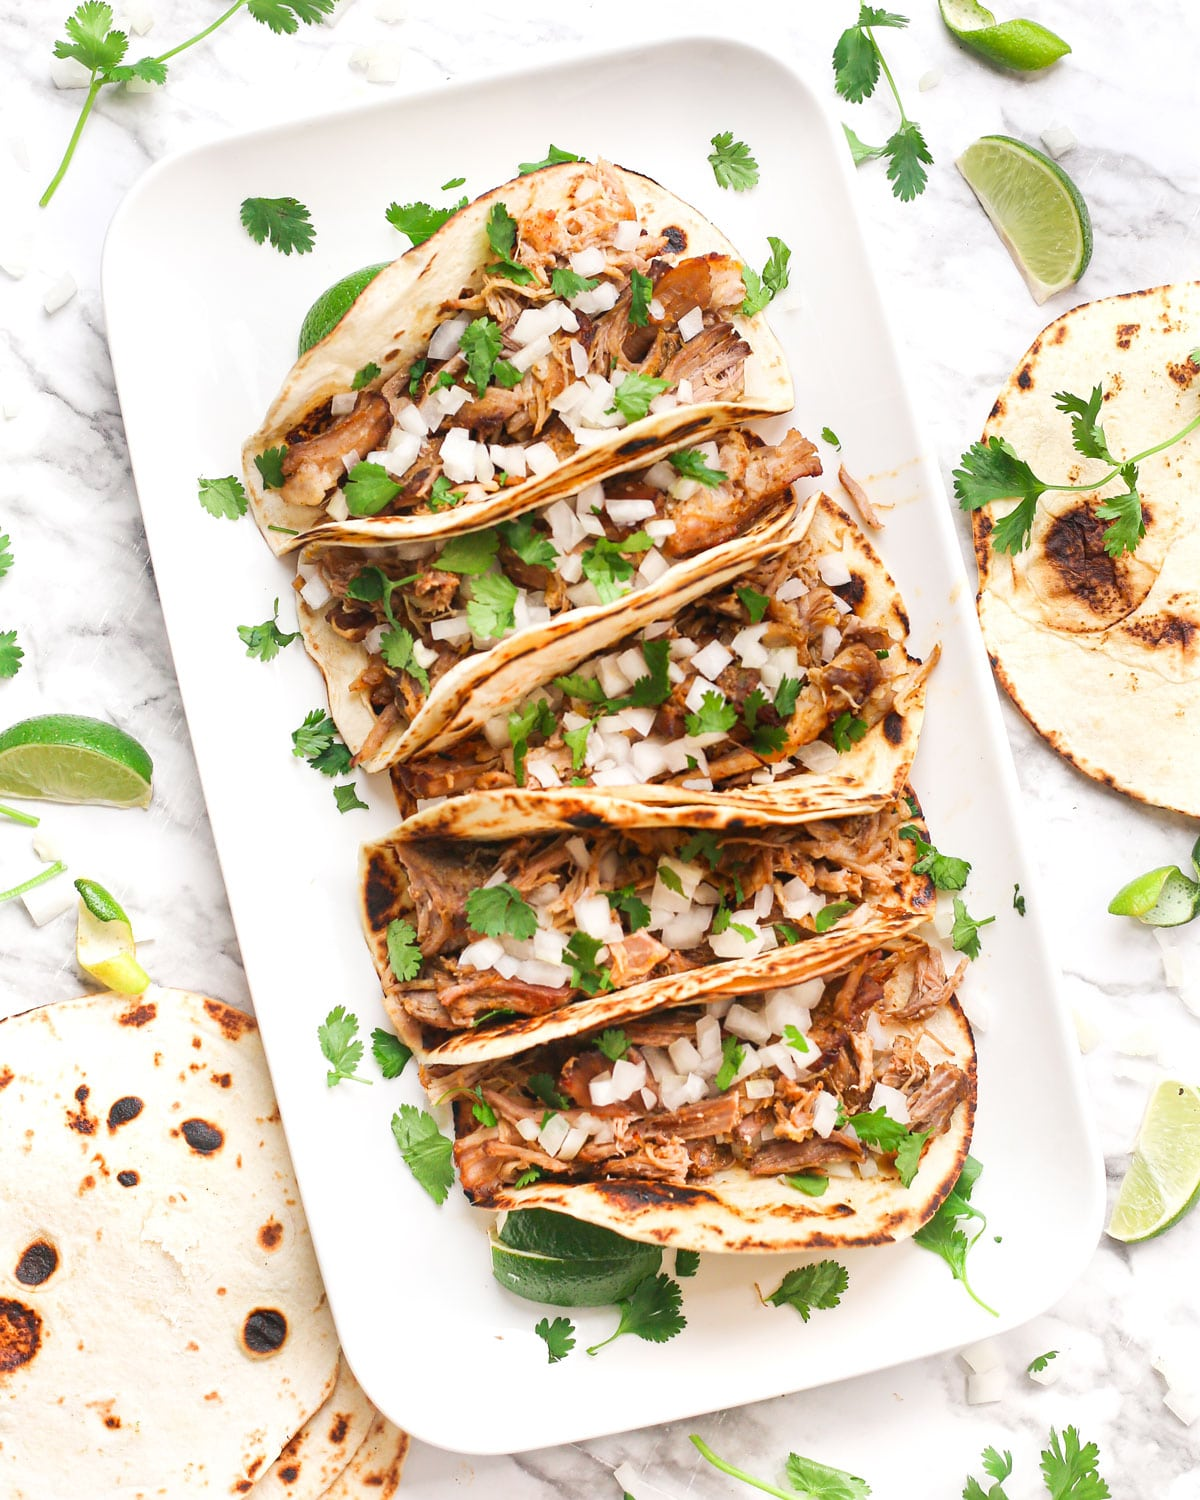 a platter of slow cooker pork carnitas in tortillas topped with fresh onion and cilantro